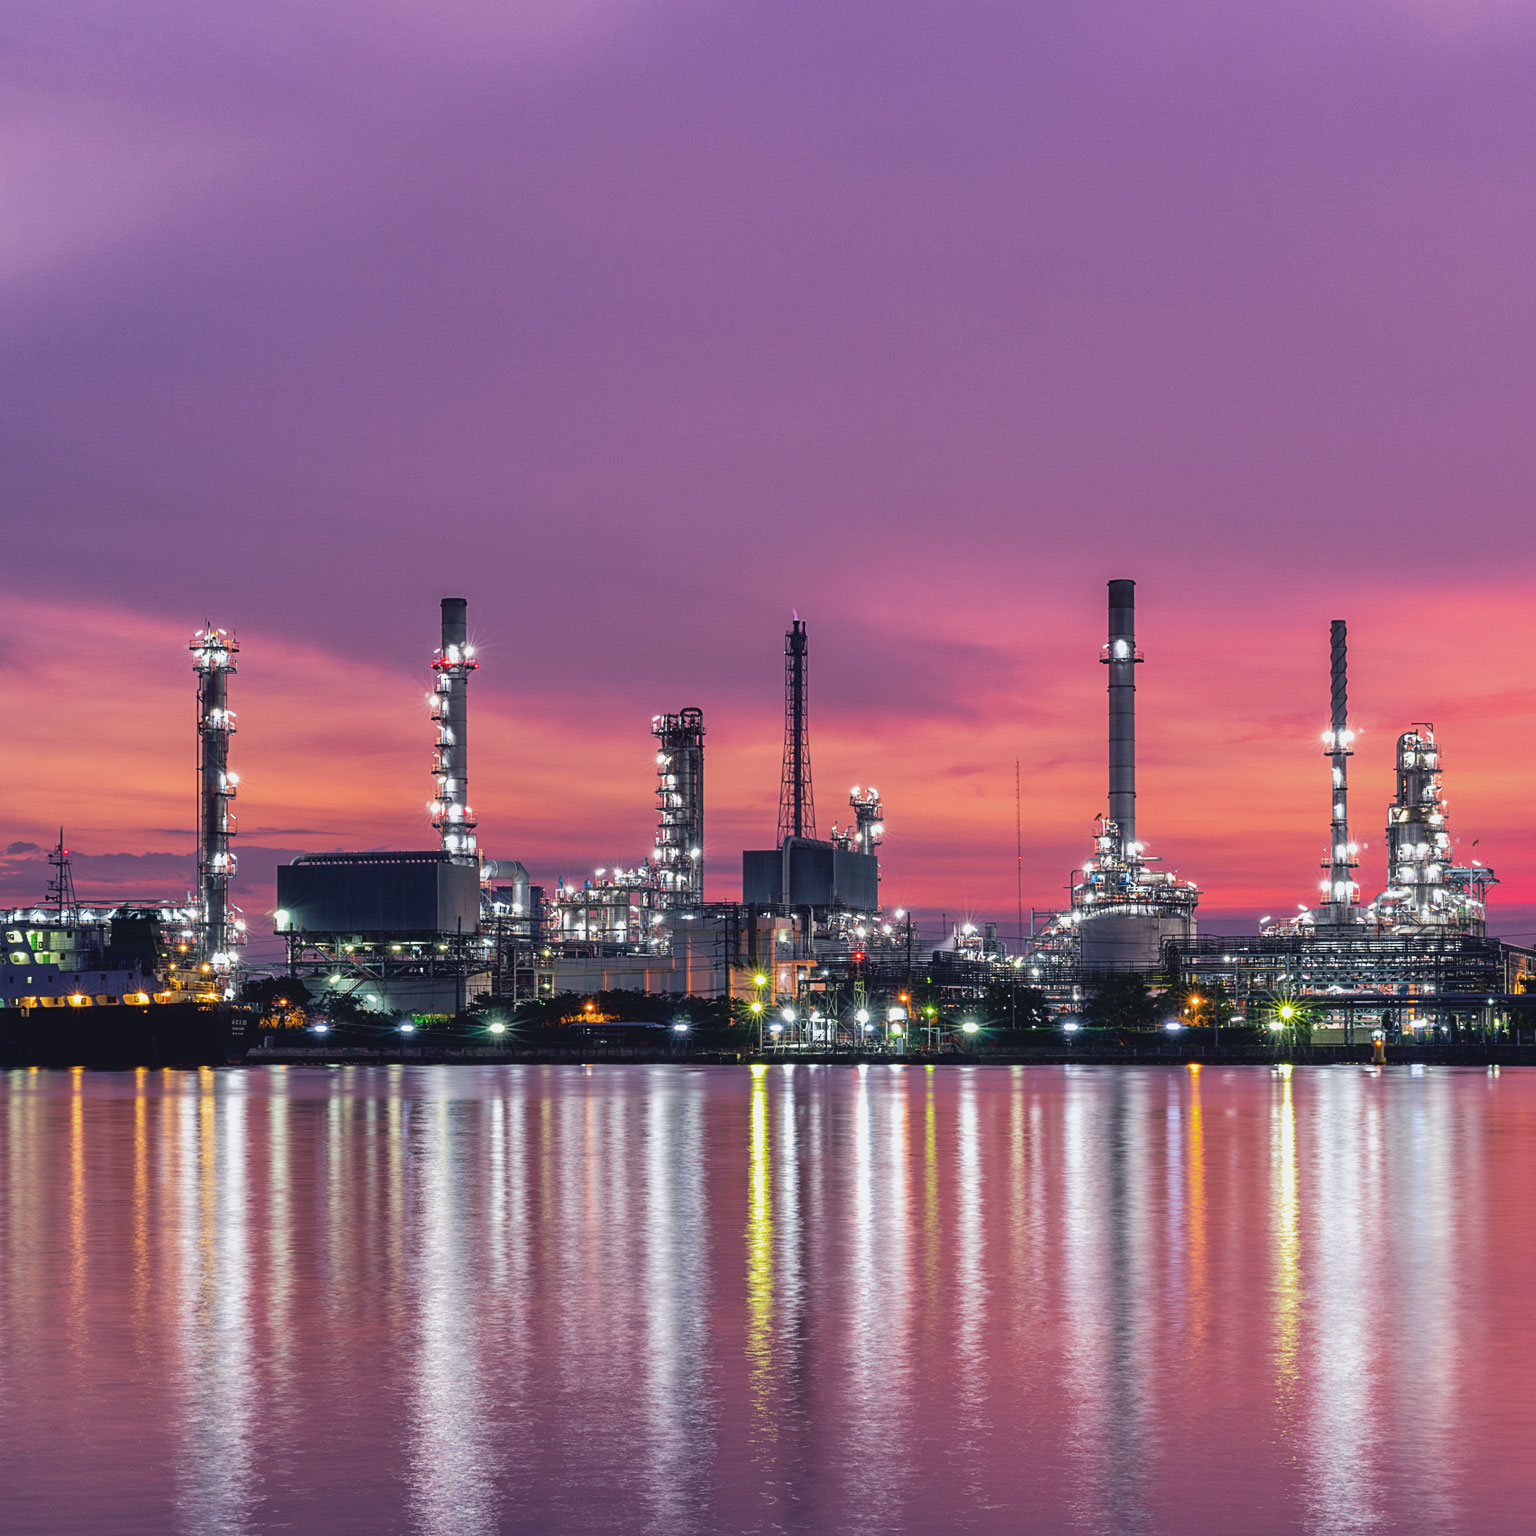 Global downstream oil and gas outlook to 2035 | McKinsey